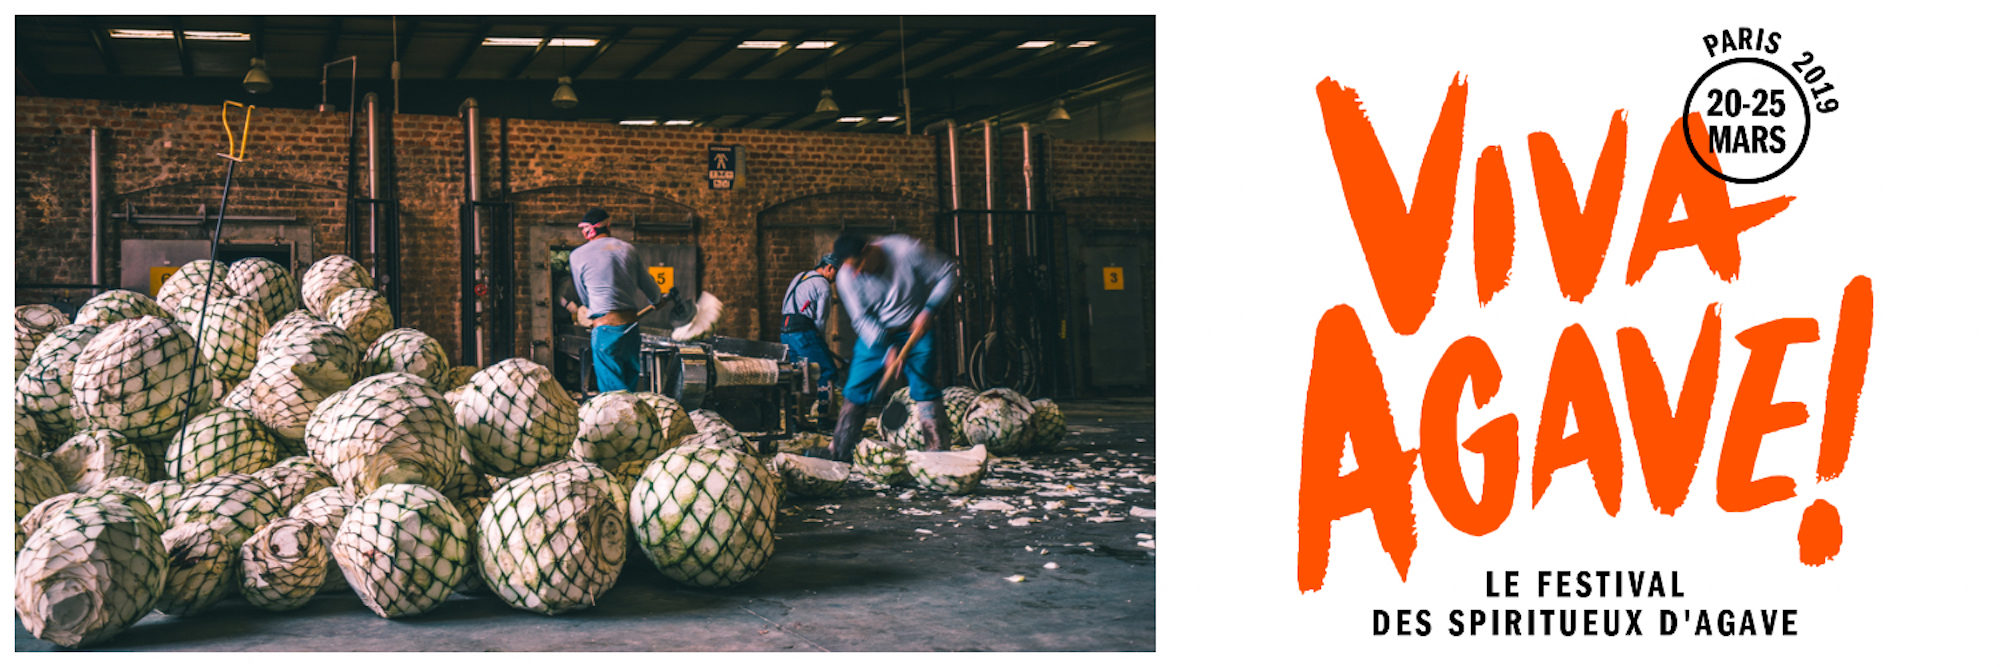 Events in Paris in March include Viva Agave spirits festival, for which these agave hearts are being chopped.